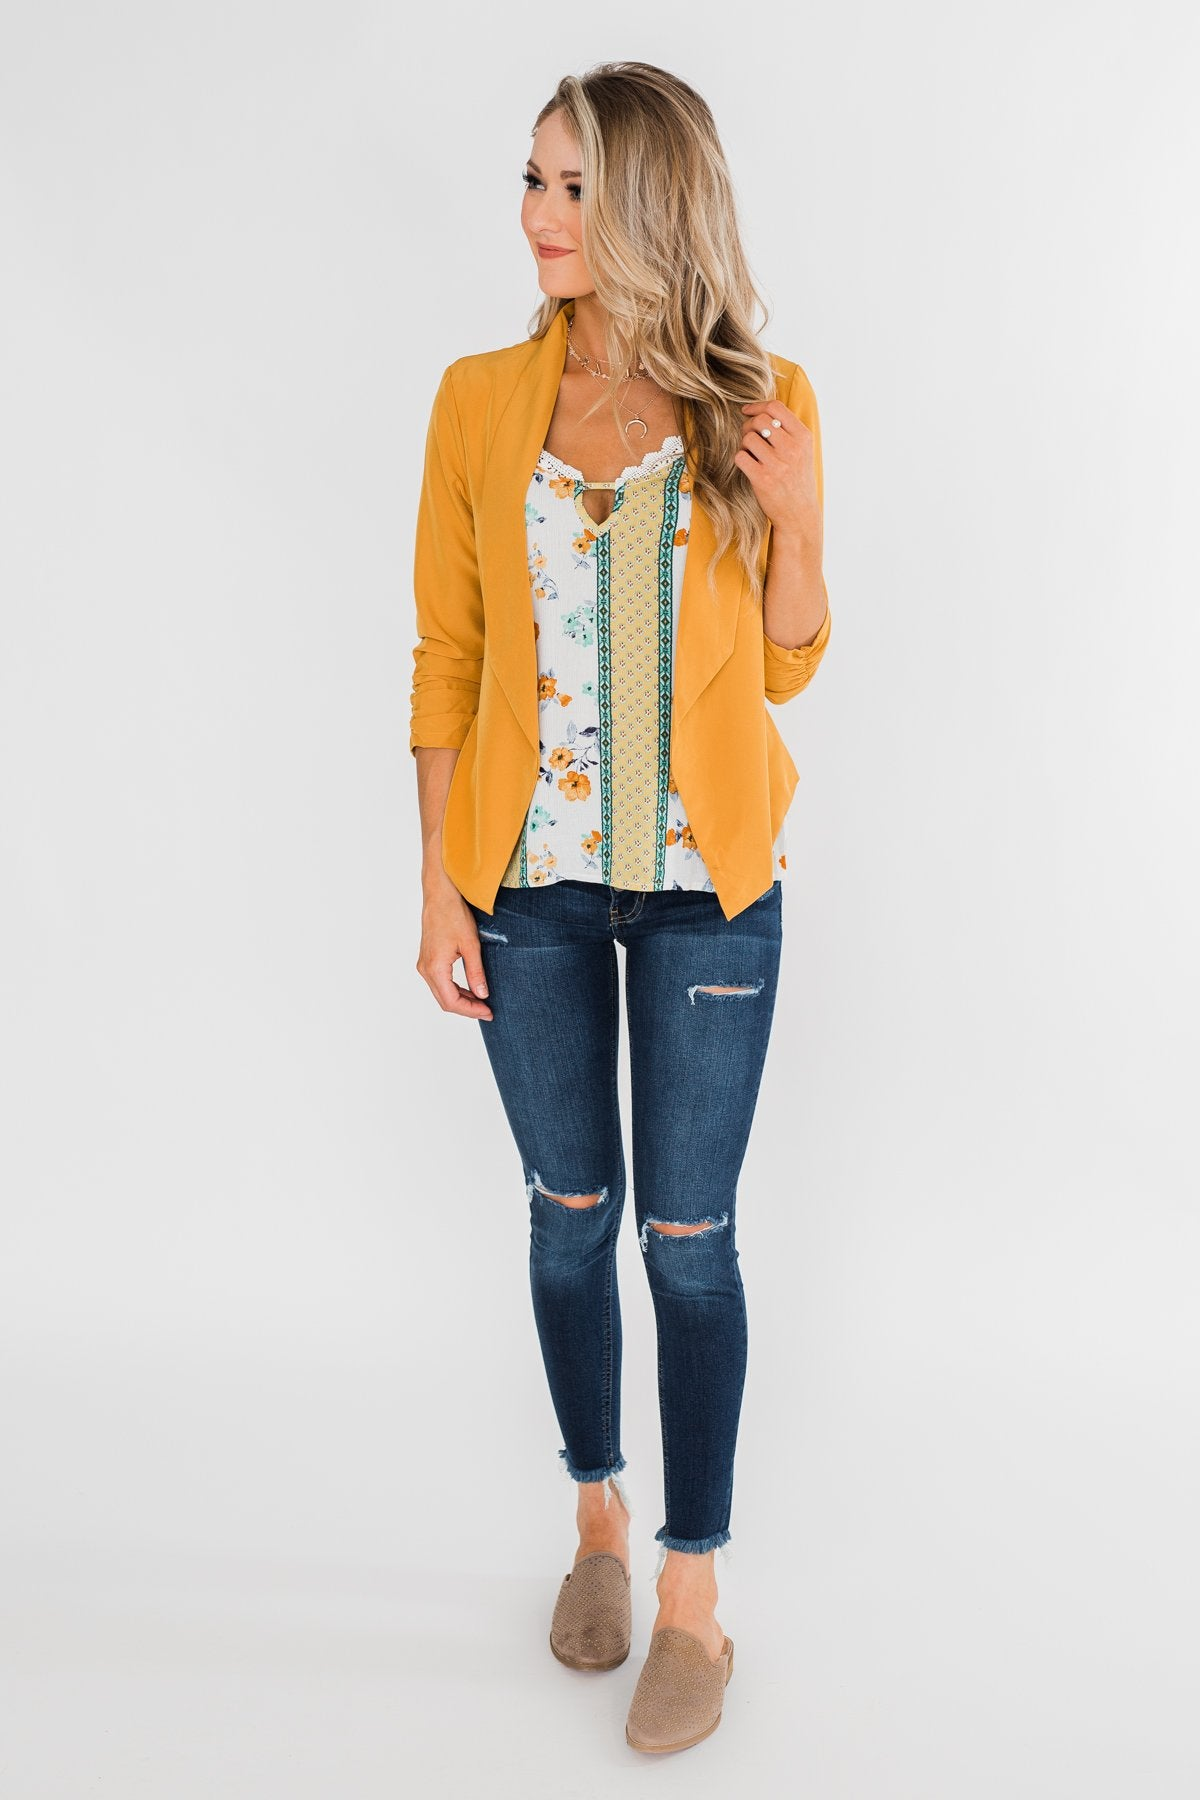 Keep It Professional Blazer- Mustard